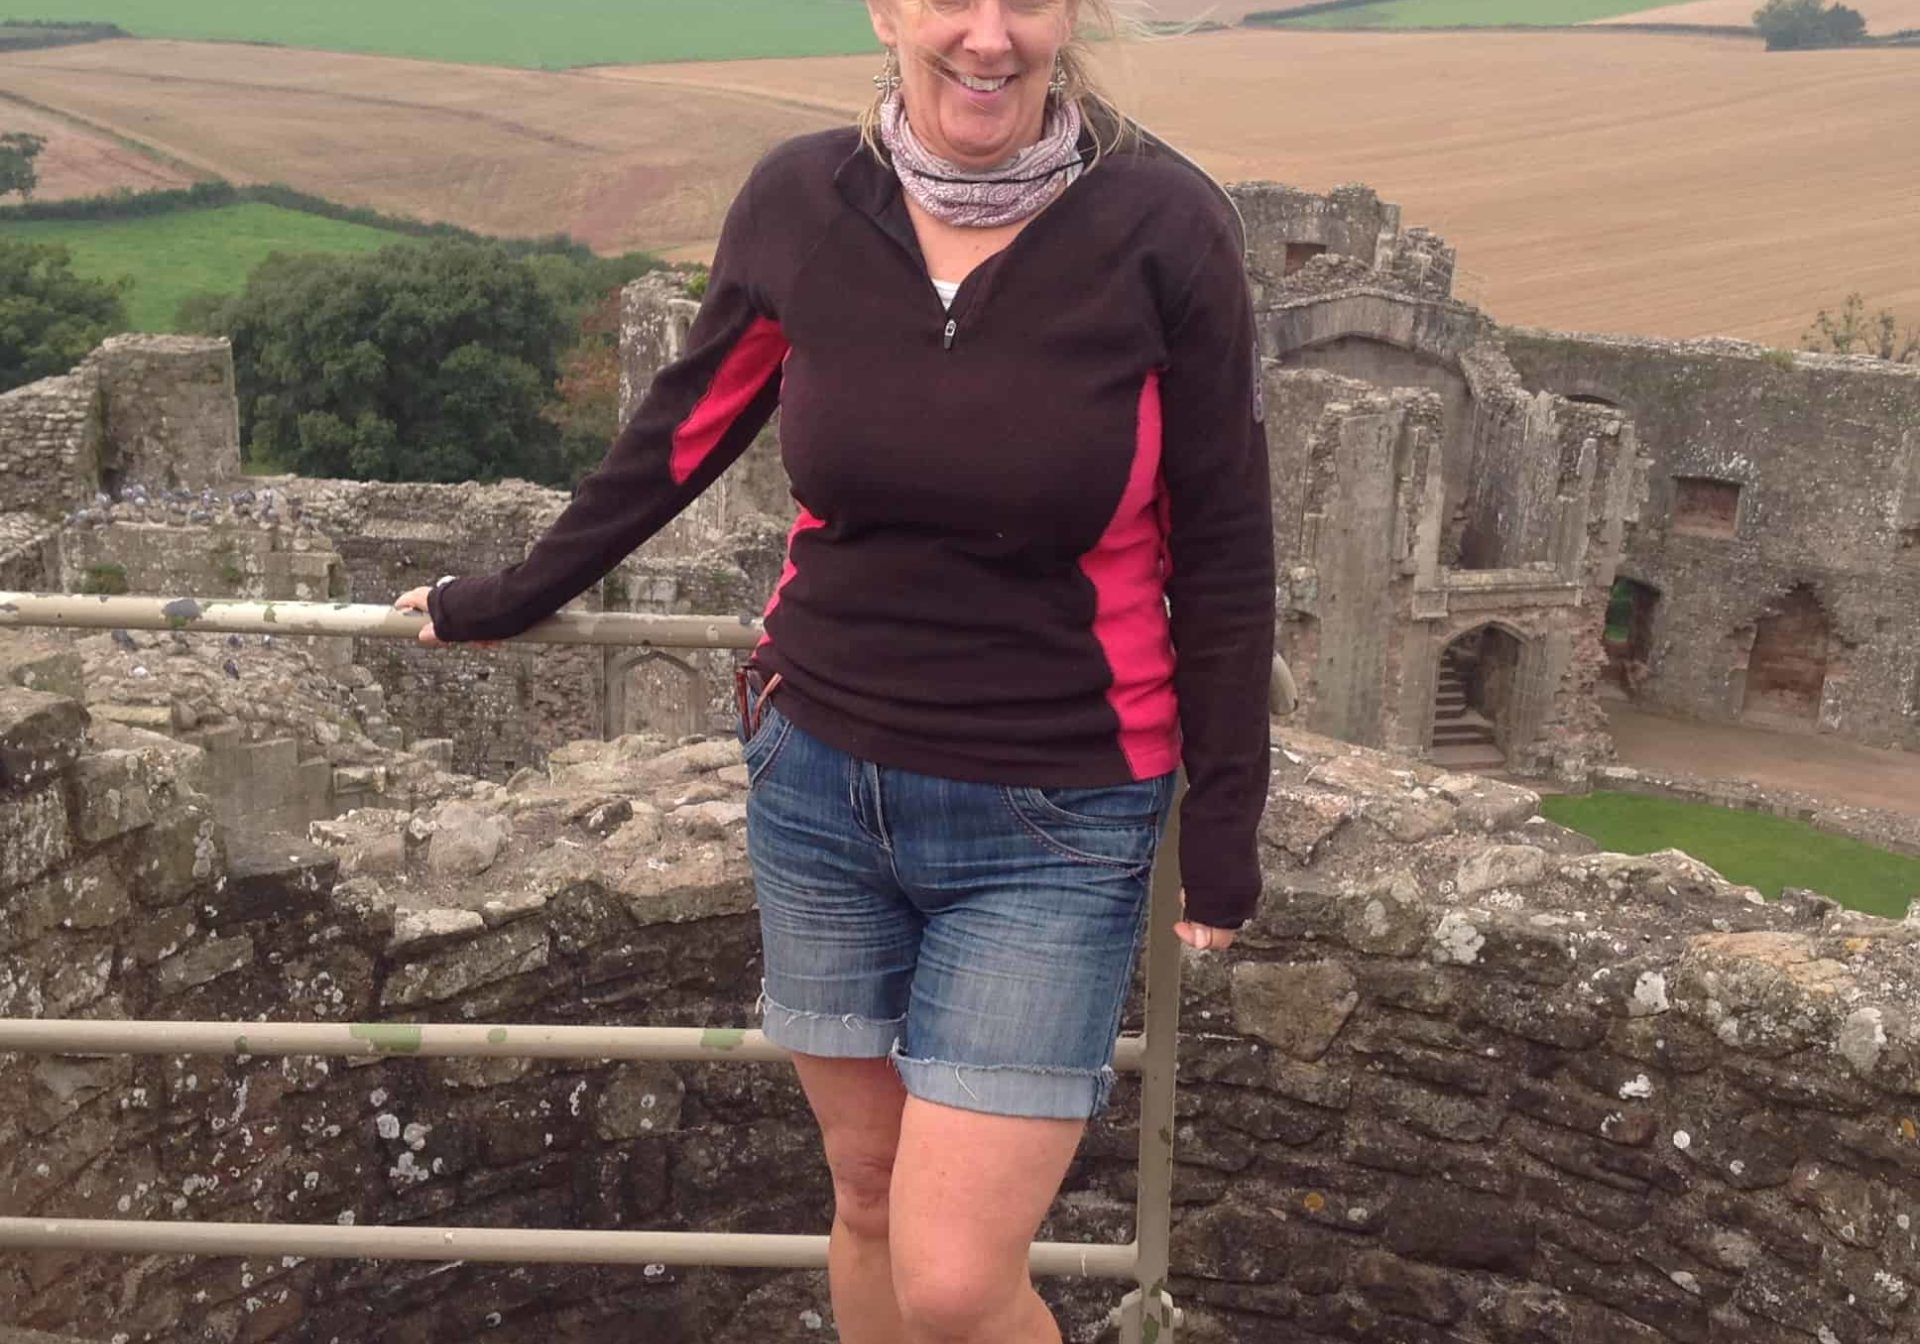 Karen standing in front of a stone wall overlooking countryside